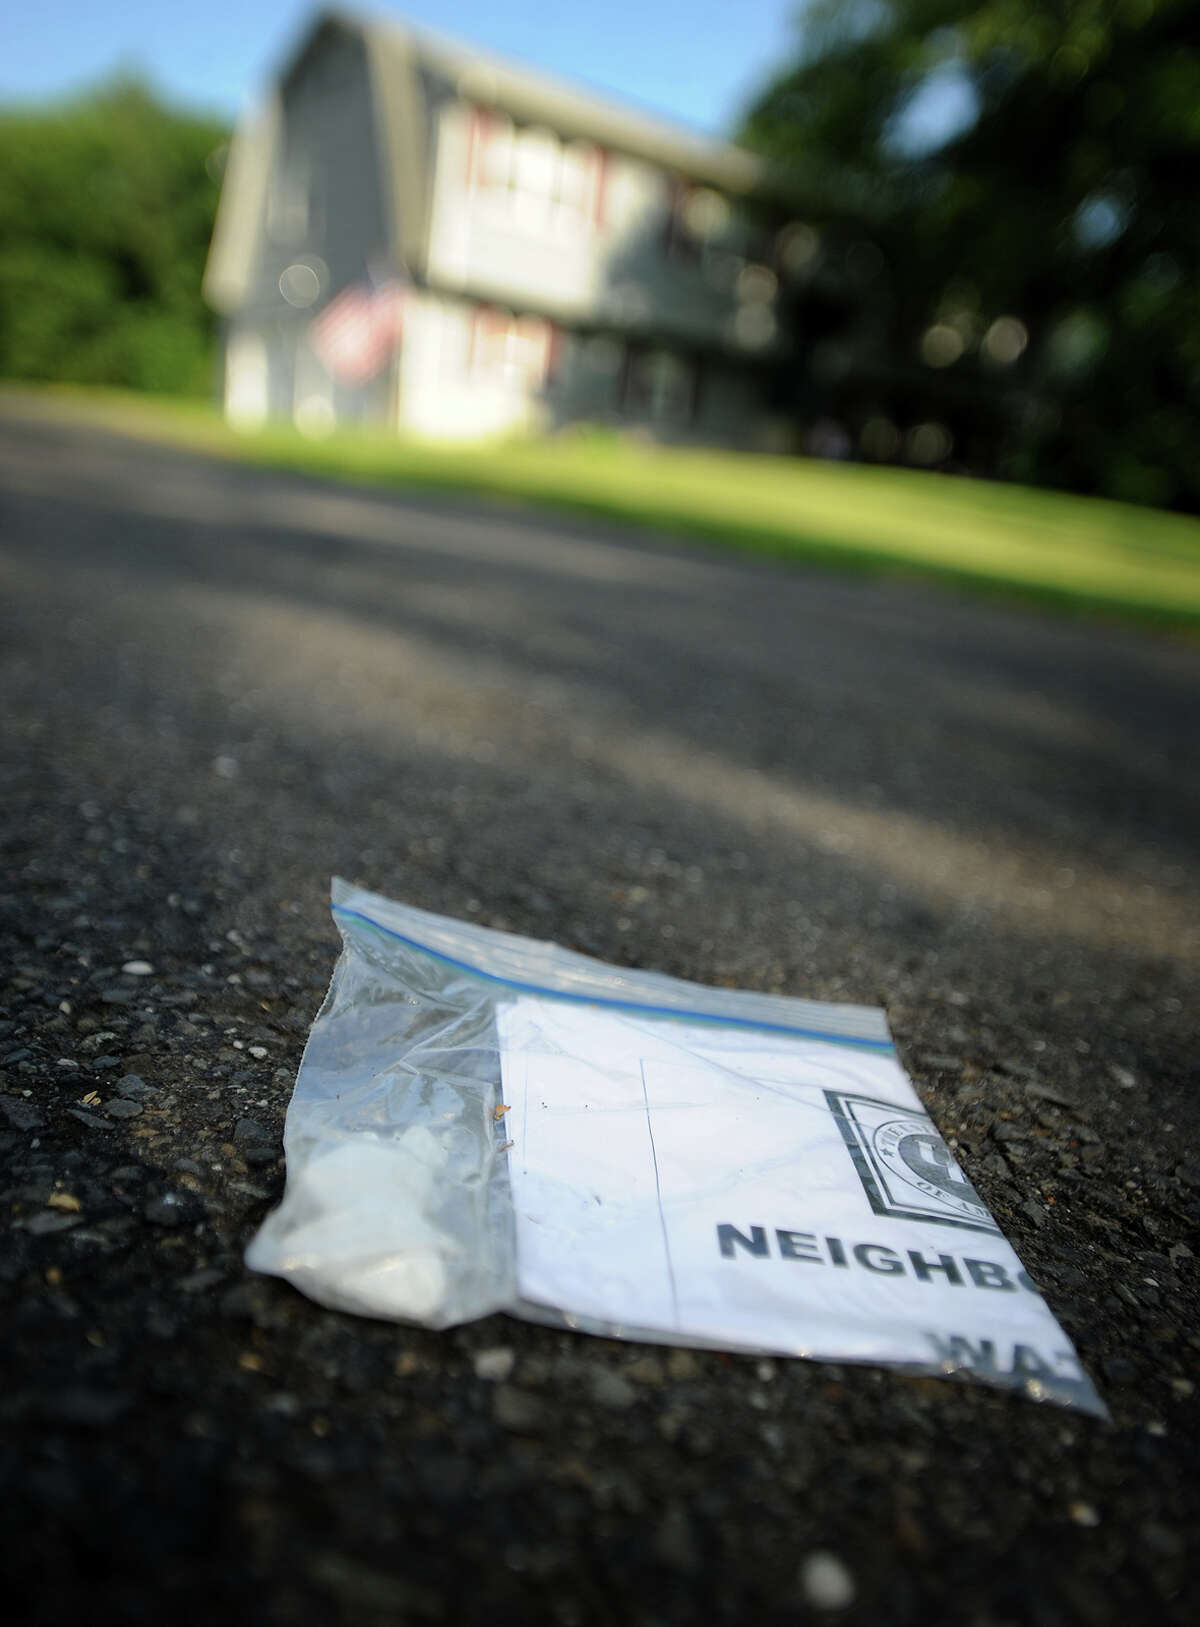 A Ku Klux Klan flier is folded in a plastic baggie held down with small white rocks at the end of a driveway on Coram Lane in Milford, Conn. on Monday, July 8, 2013.